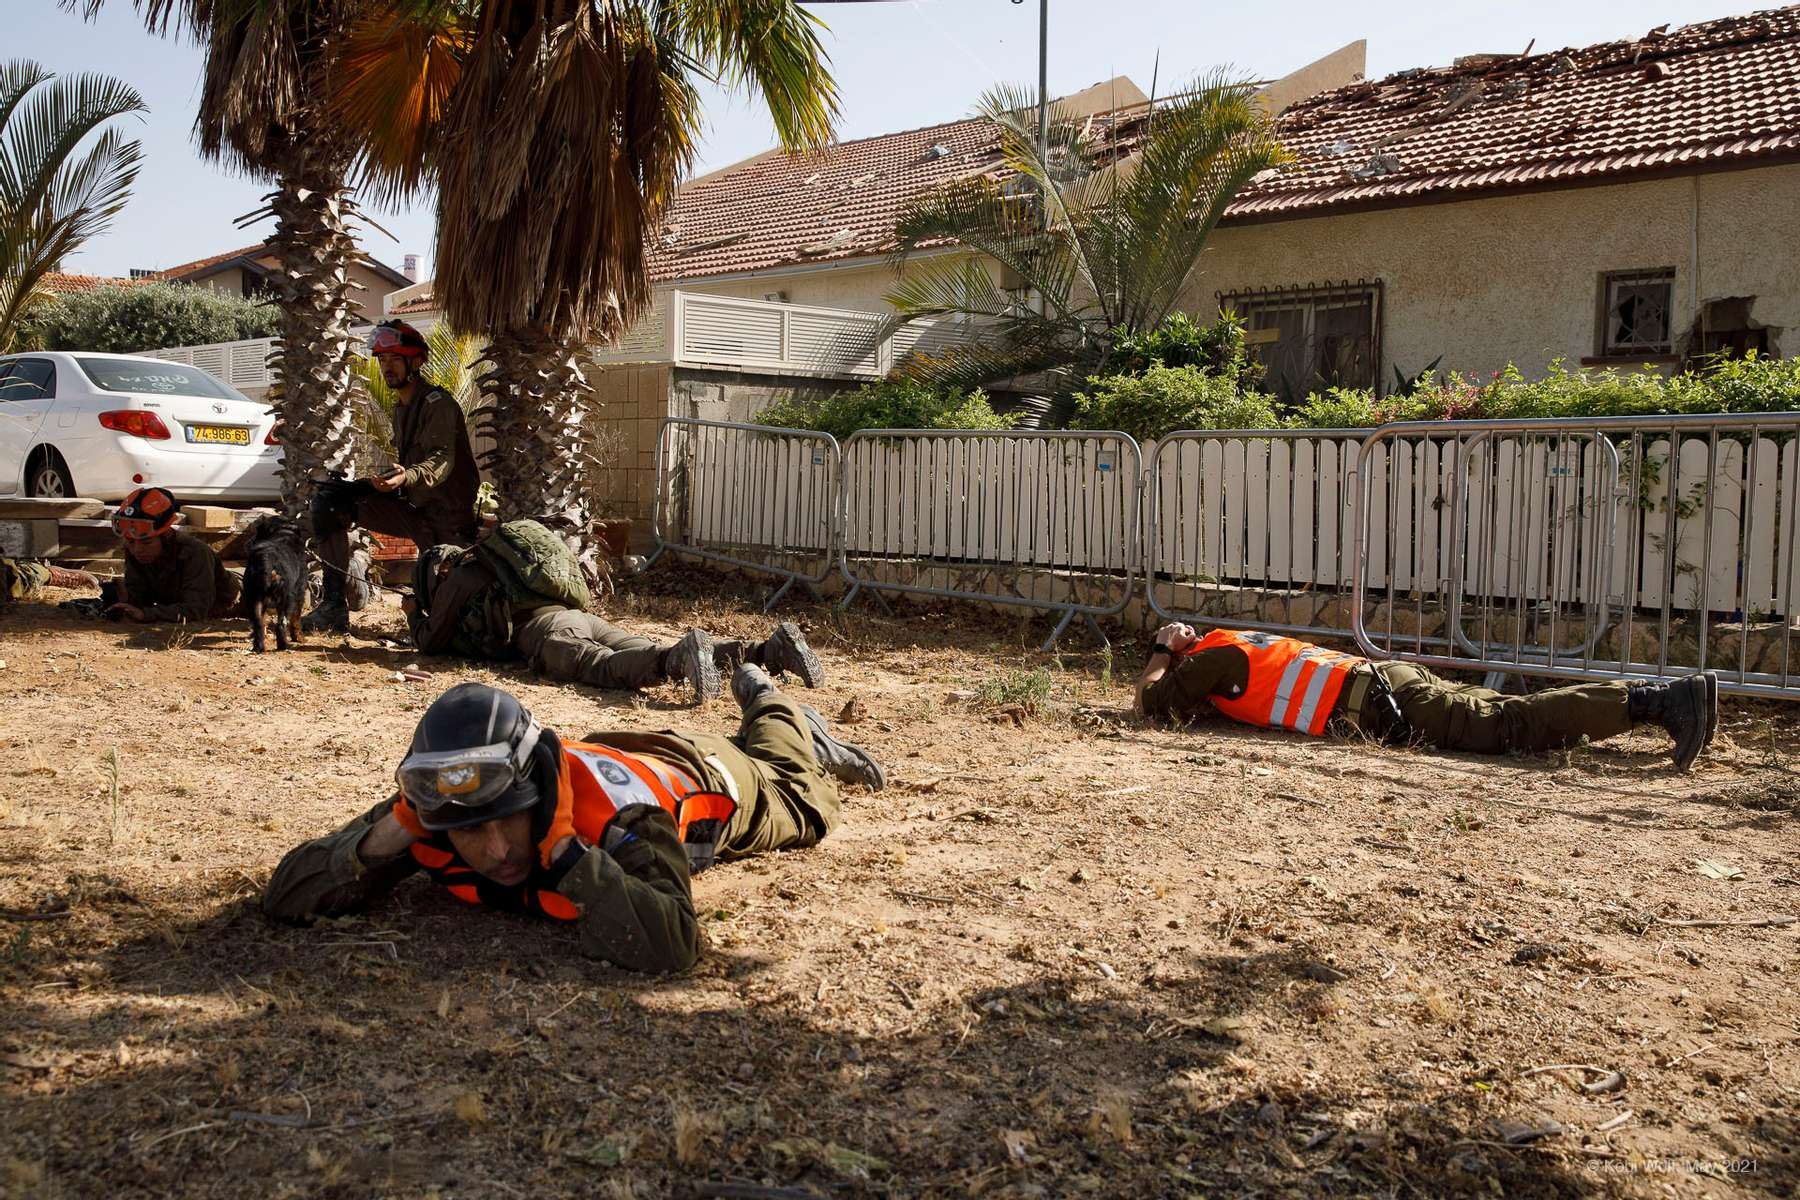 Israeli rescue man protect himself during a rockets attack on Ashkelon.in Ashkelon Israel on May 11 2021 photographer: Kobi Wolf